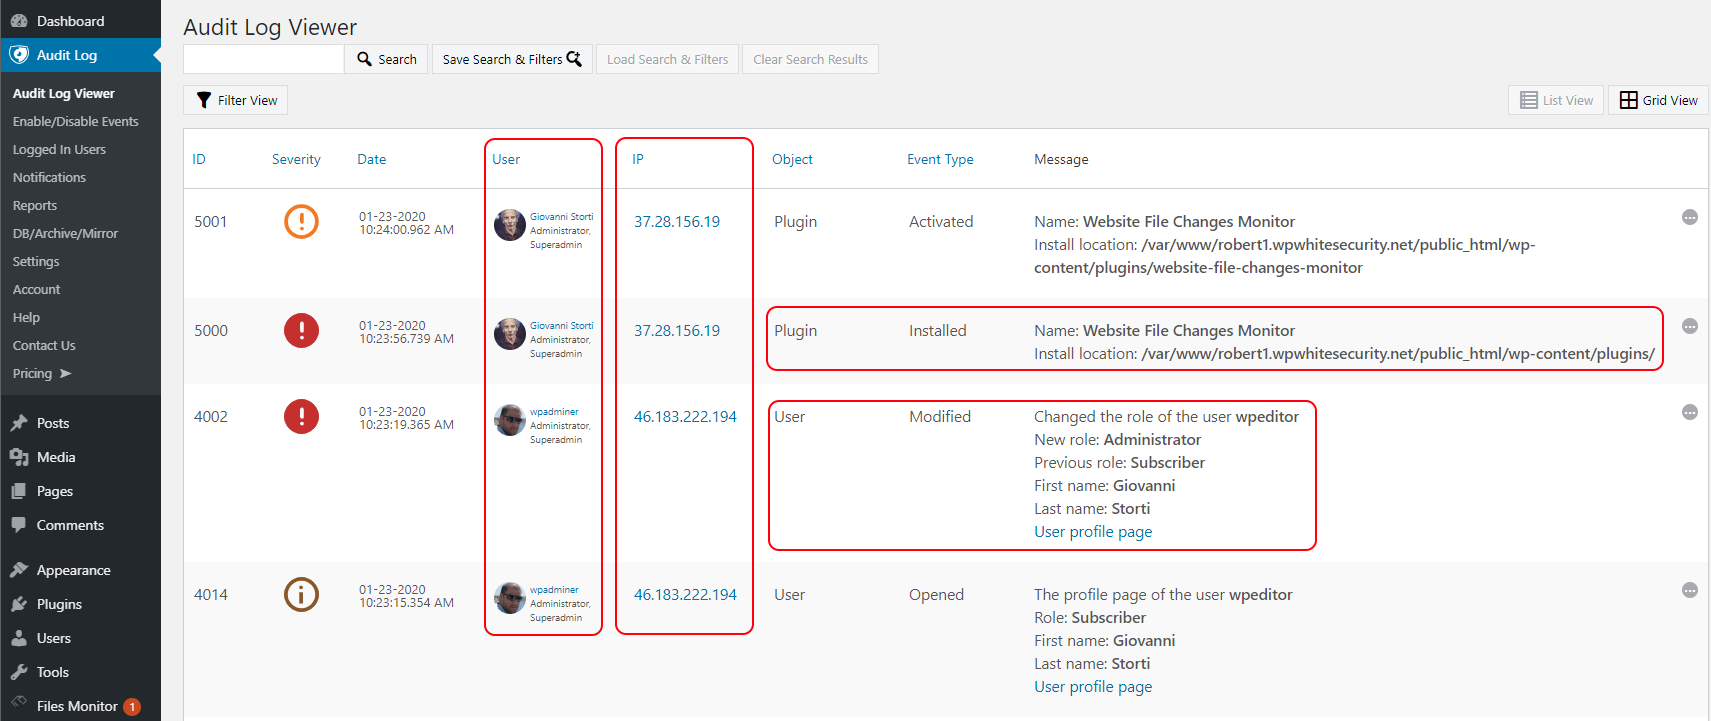 A new plugin install and a user role change reported in the activity logs